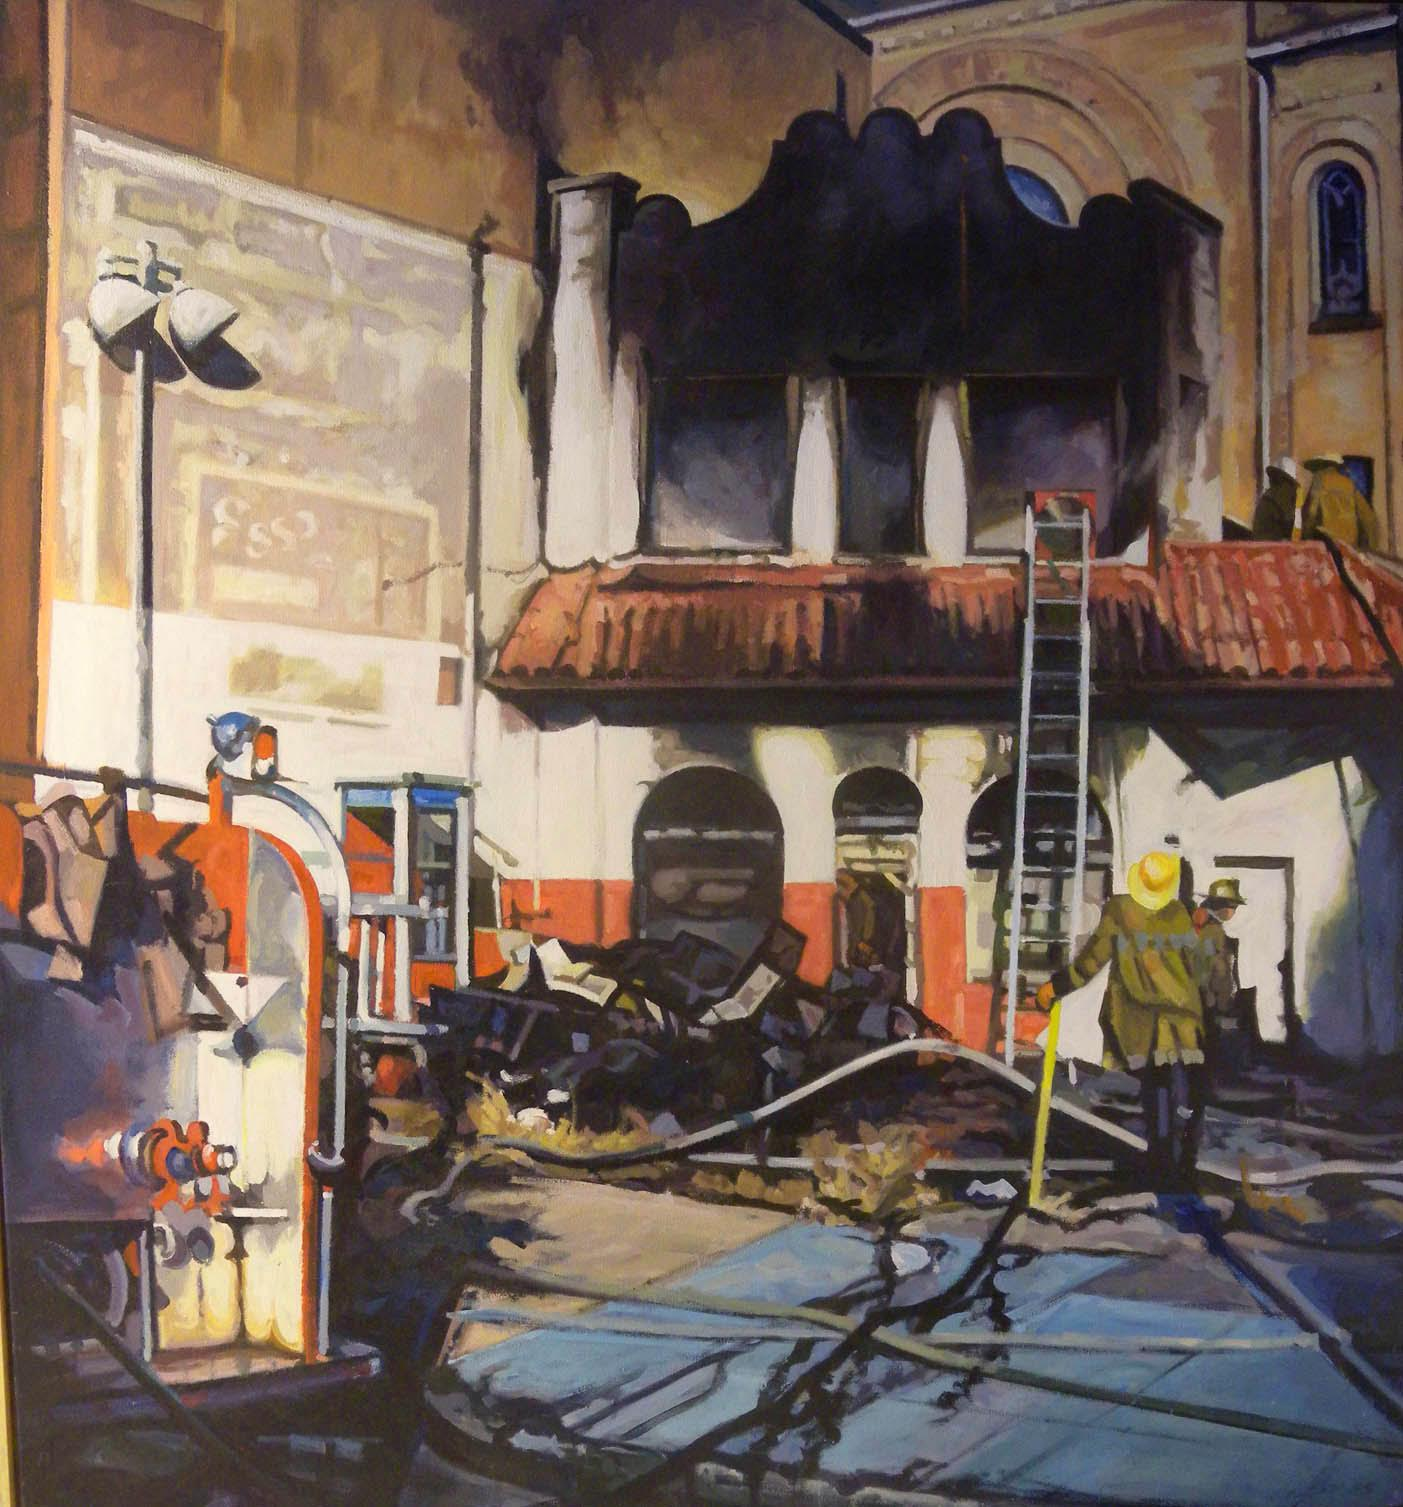 "Exxon's Last Stand, acrylic on canvas, 60"" x 60"", 1987                Smithsonian American Art Museum Collection"